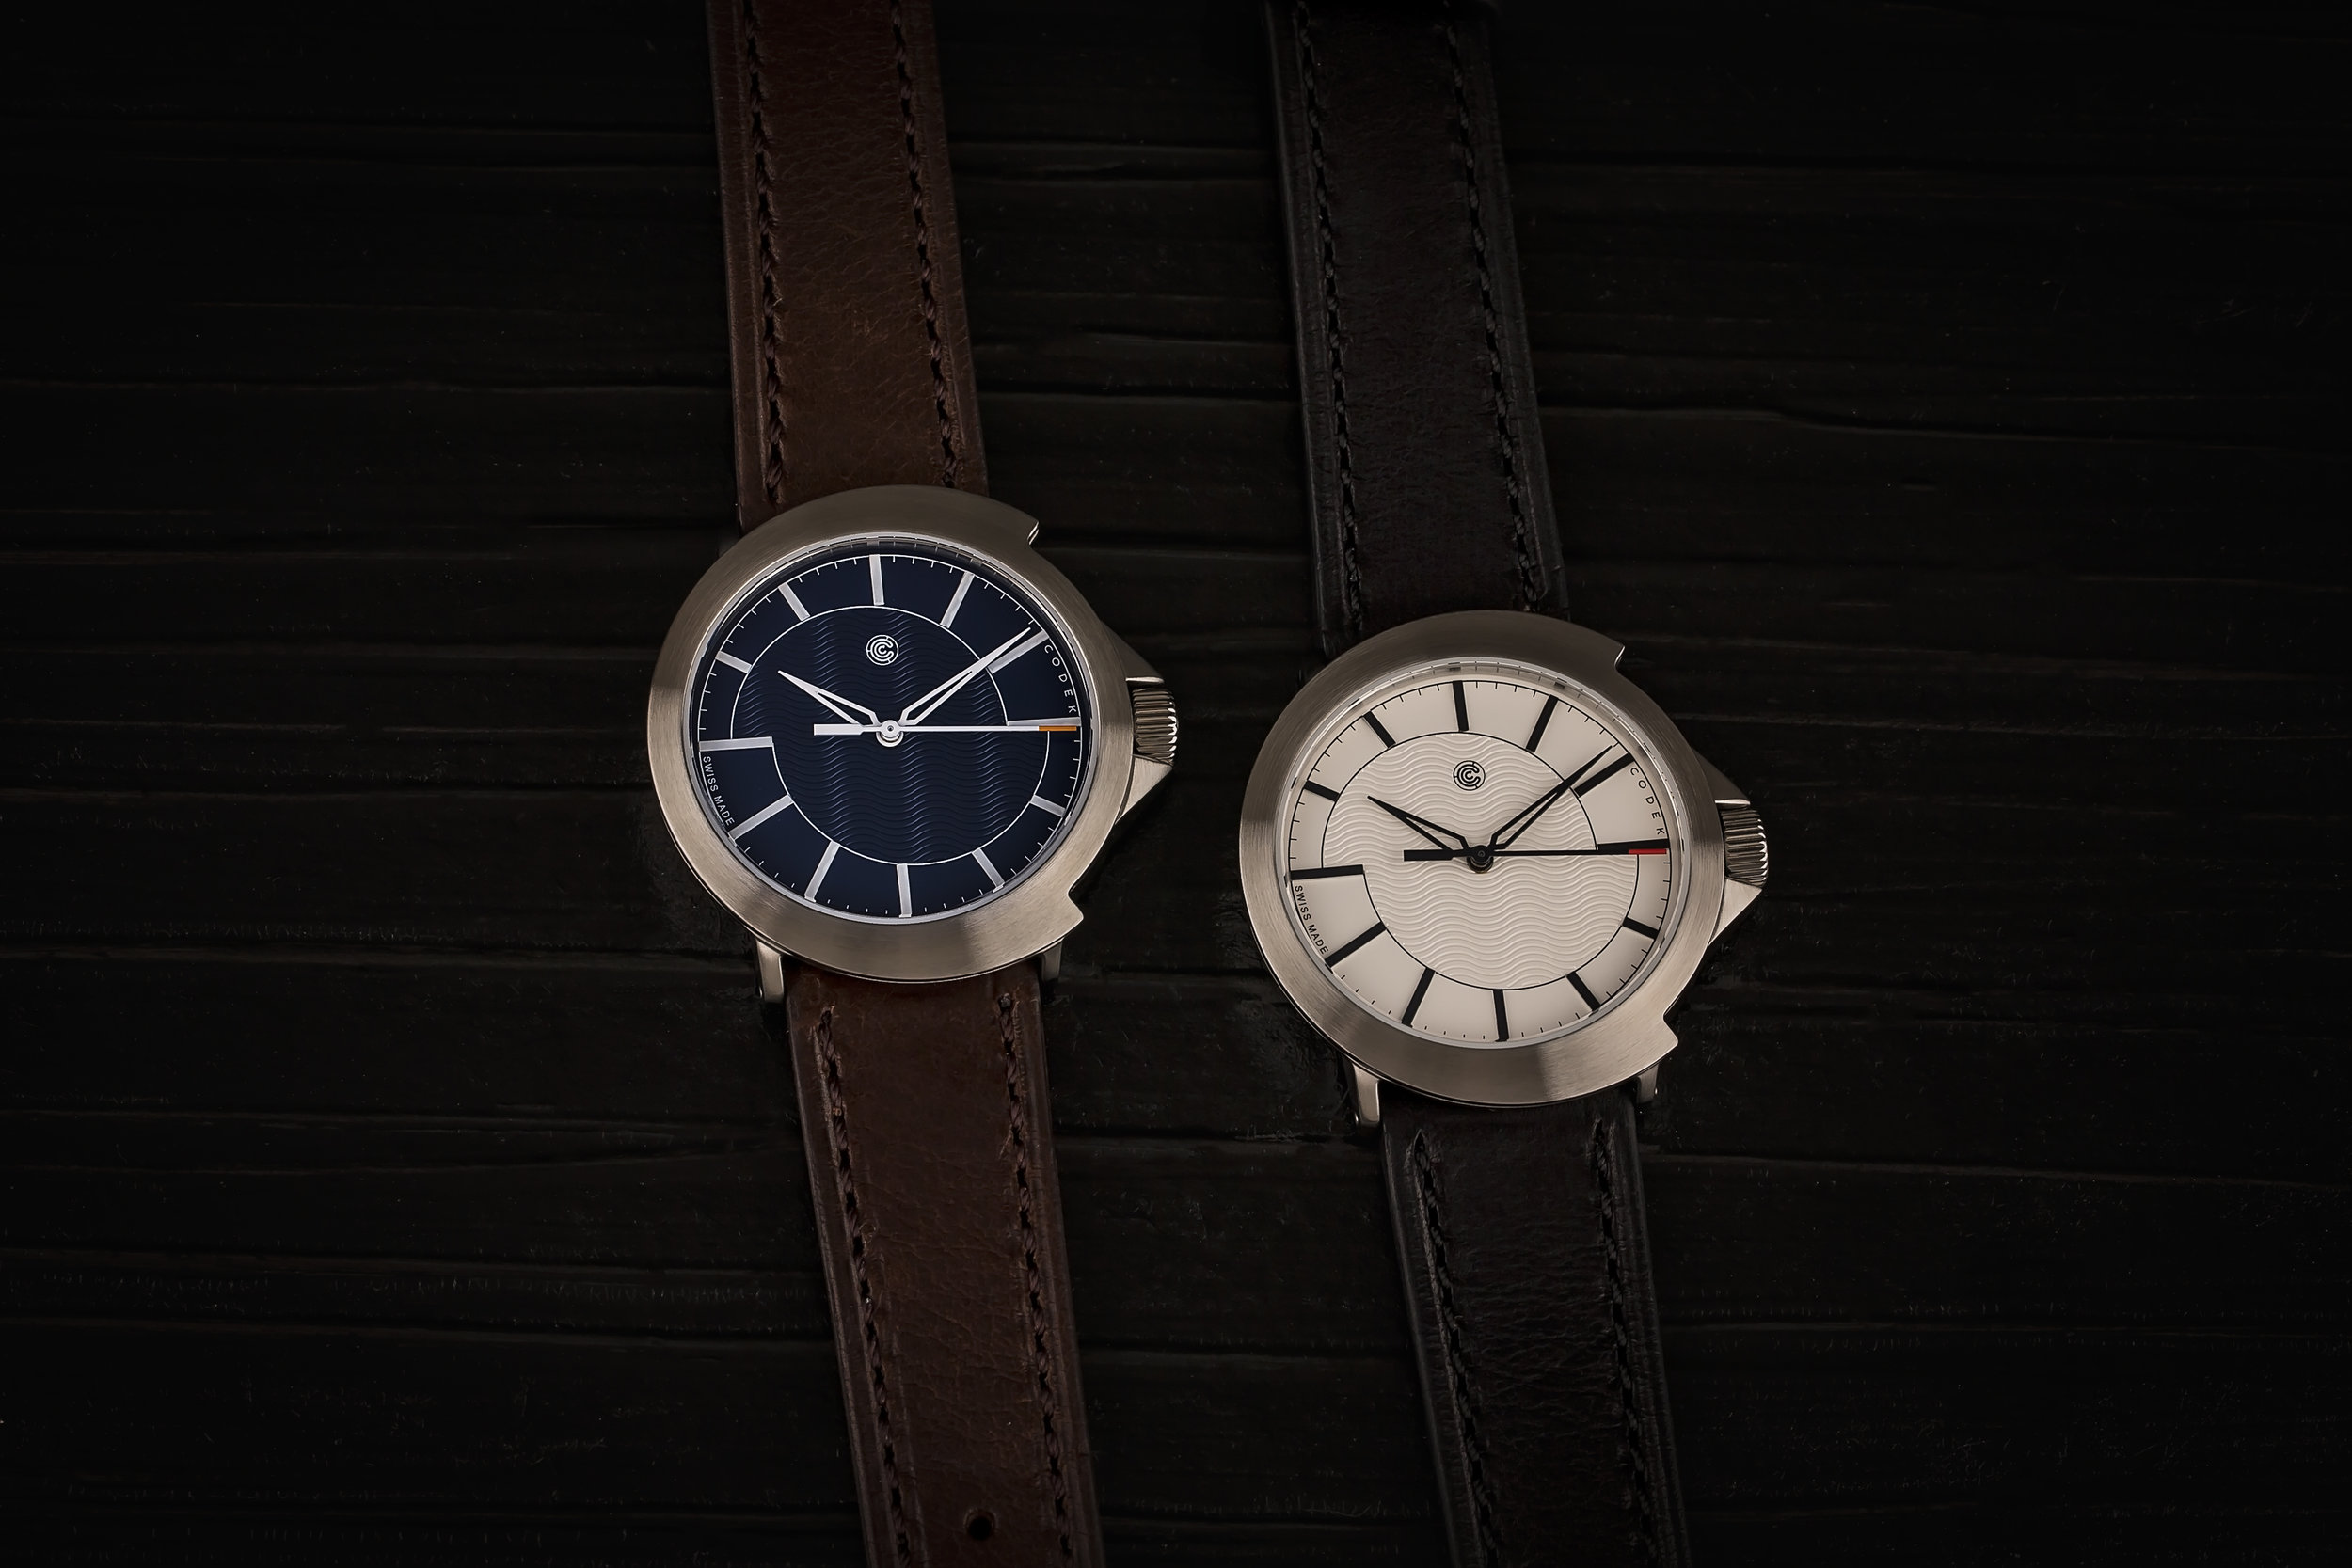 Color Options - There are two dial variants: Midnight Blue with white indices and hands sporting an orange painted tip, and Opaline White with black indices and hands sporting a red painted tip. The contrasting light and dark colors make the watch extremely legible, while the painted tips add a subtle pop of color.